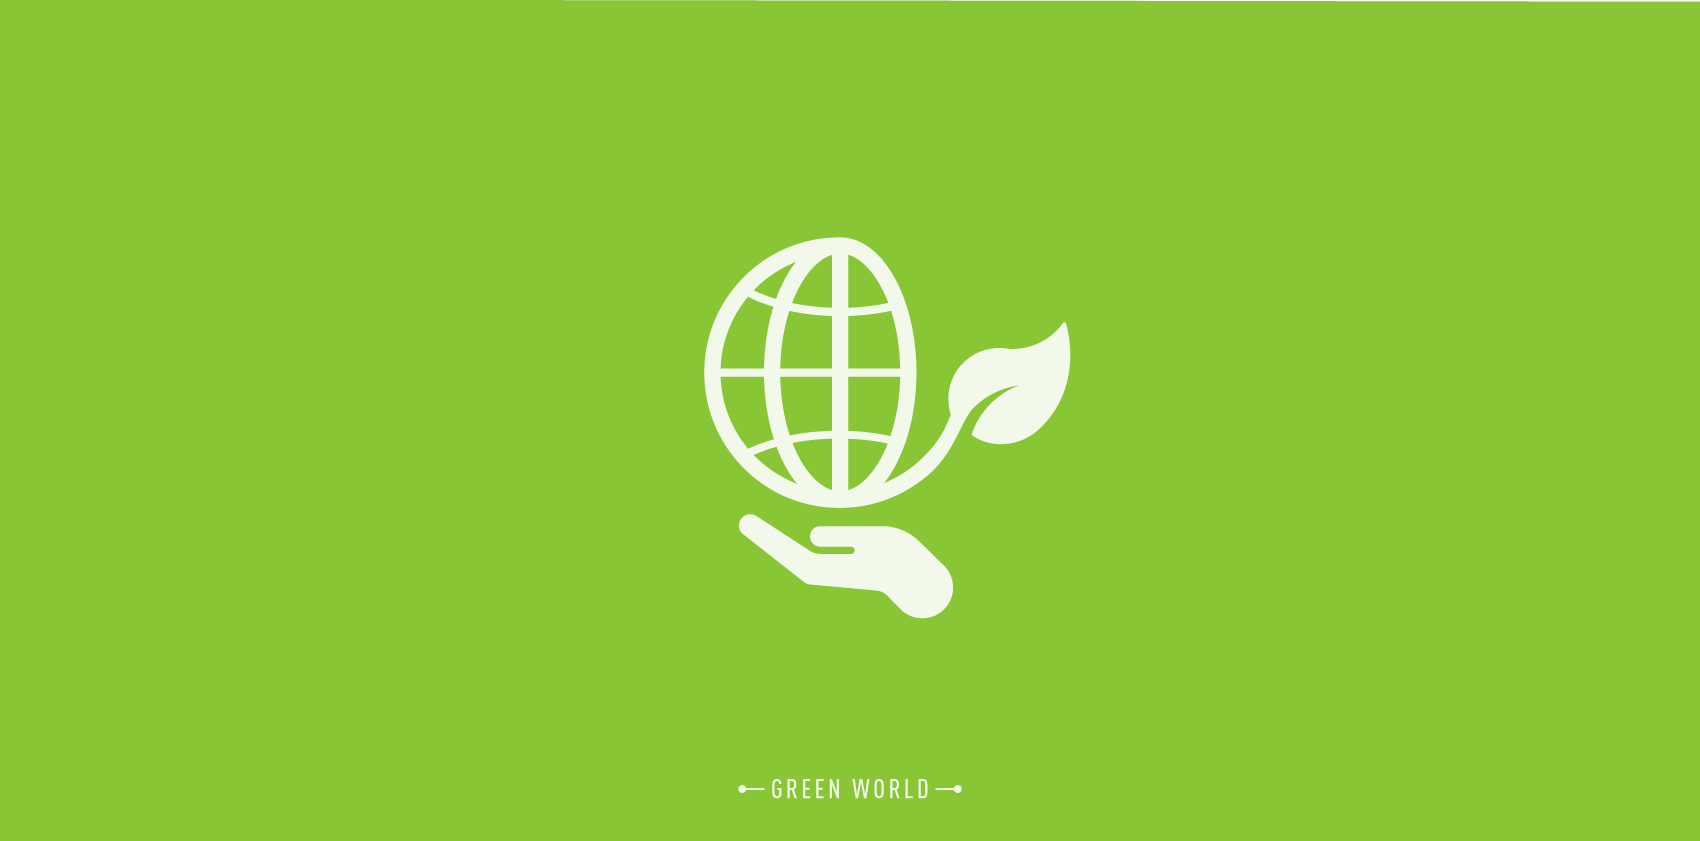 environmental icon design with a hand holding a globe